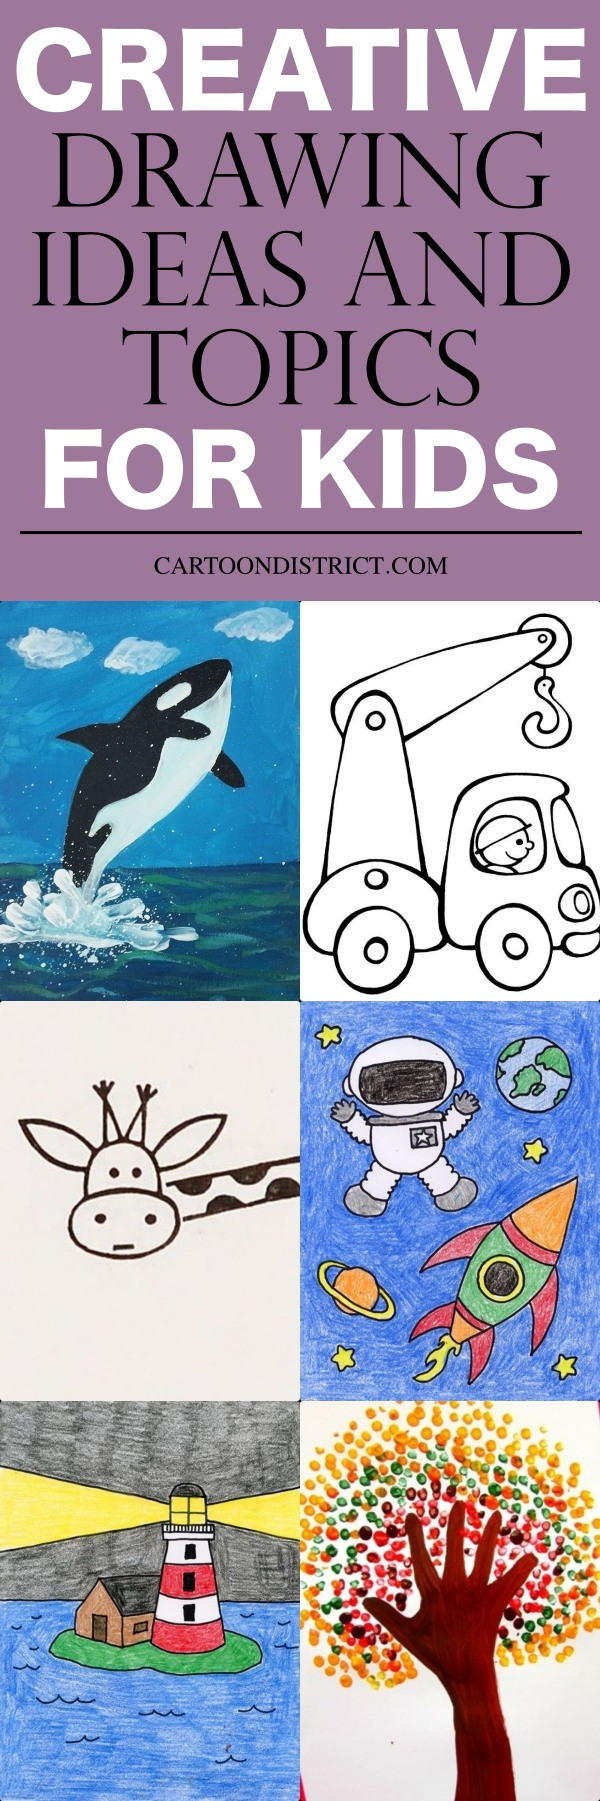 Creative Drawing Ideas and Topics for Kids